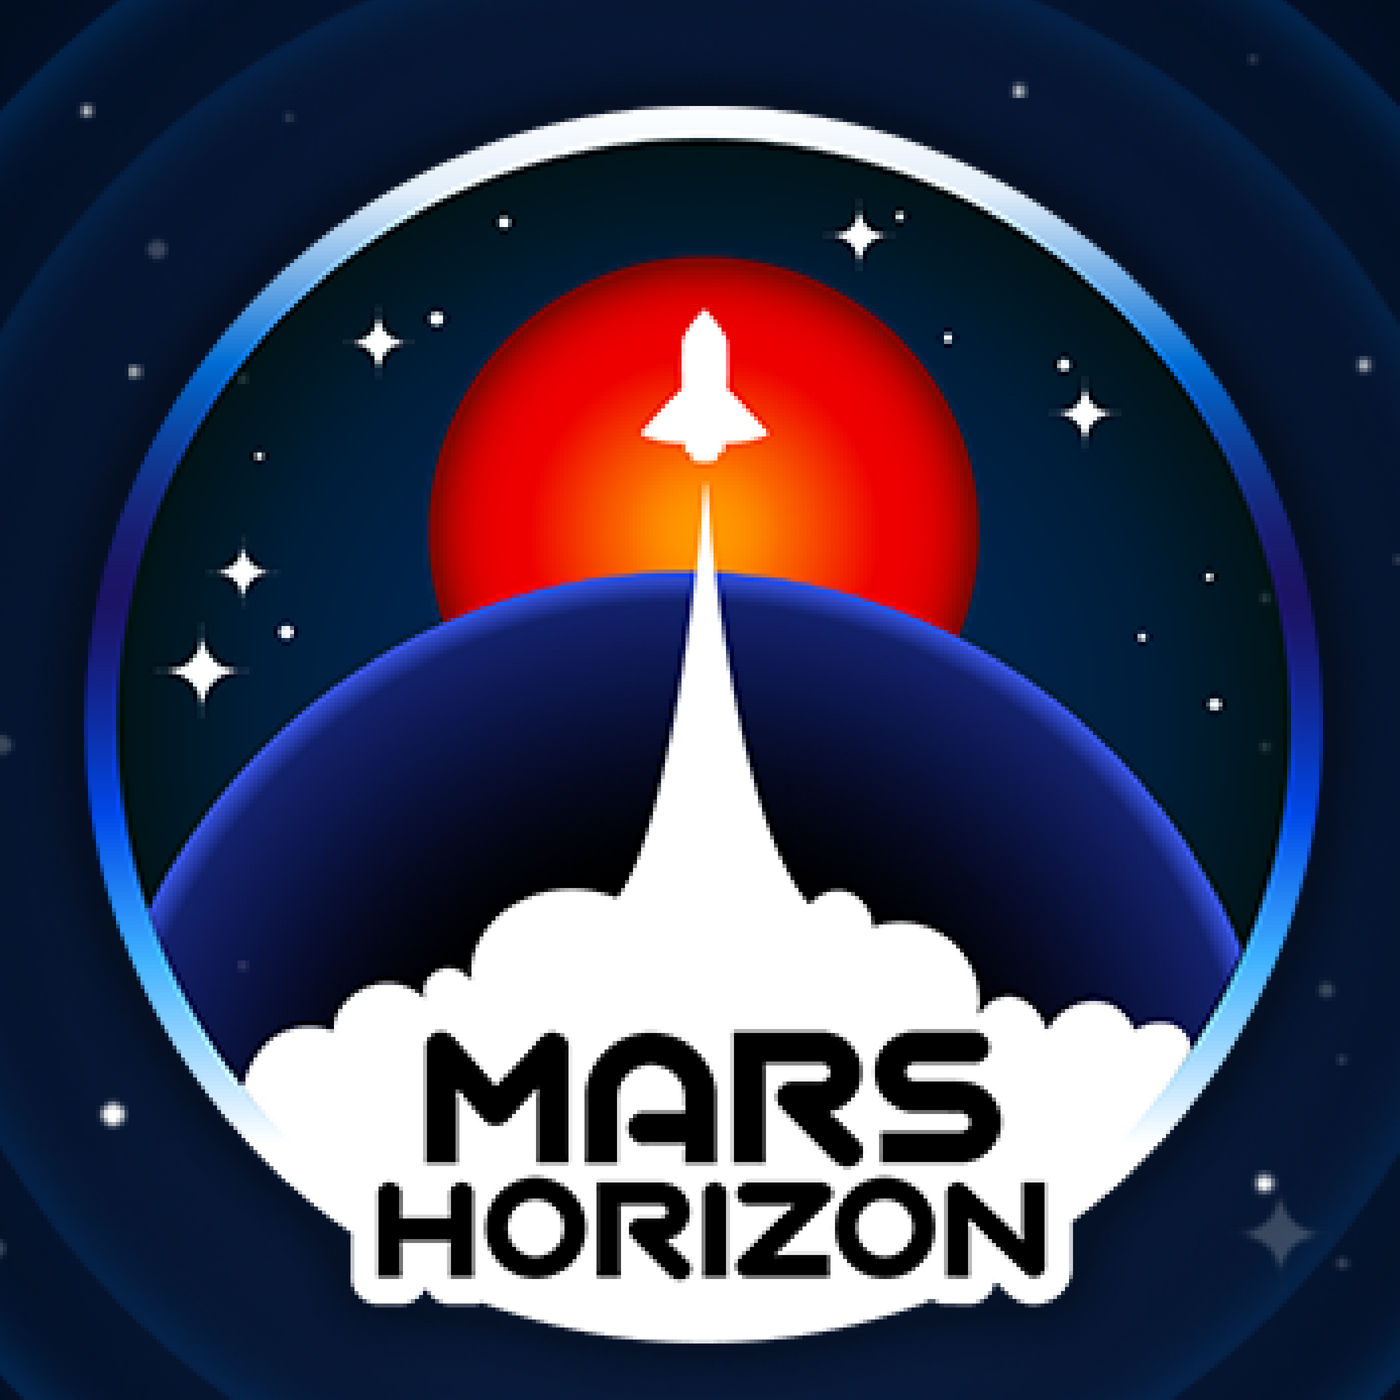 Episode 3: Mars Horizon - Andrew Kuh of the UK Space Agency chats Mars and the inner workings of an agency with Tomas, Steve talks Mars Mission, and the Brodster details Event Systems.